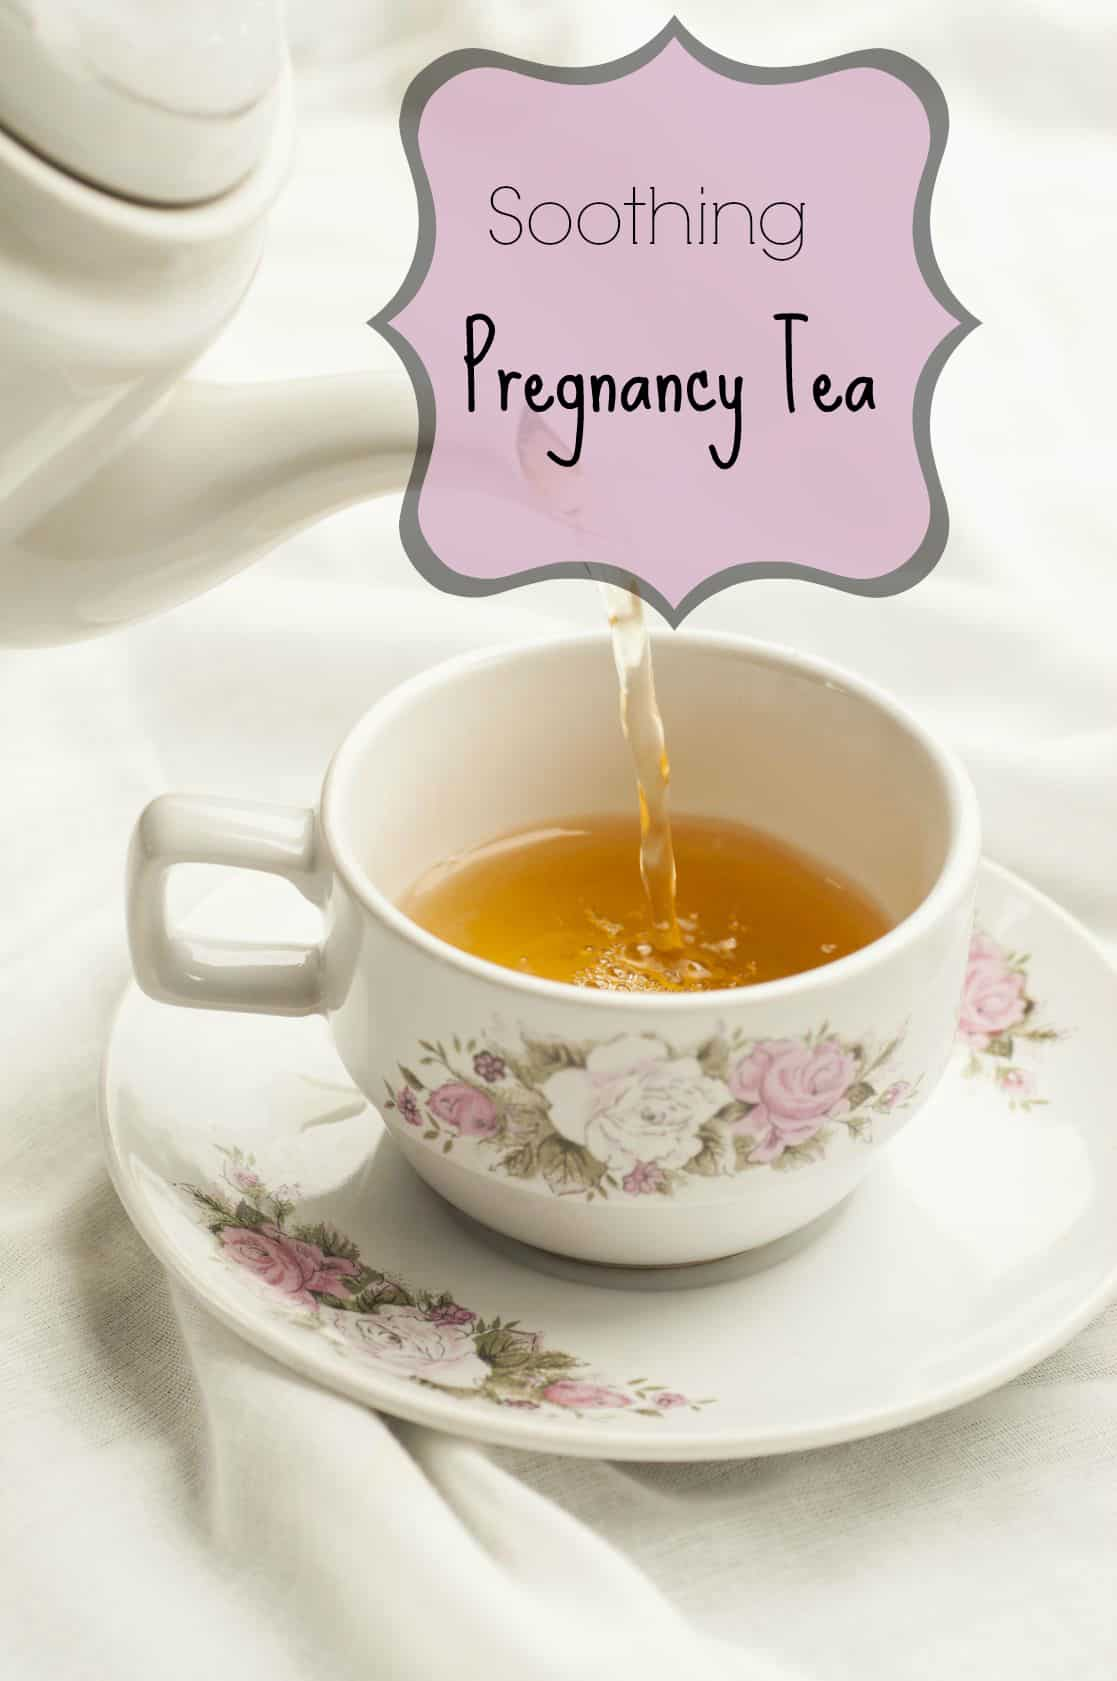 Soothing pregnancy tea